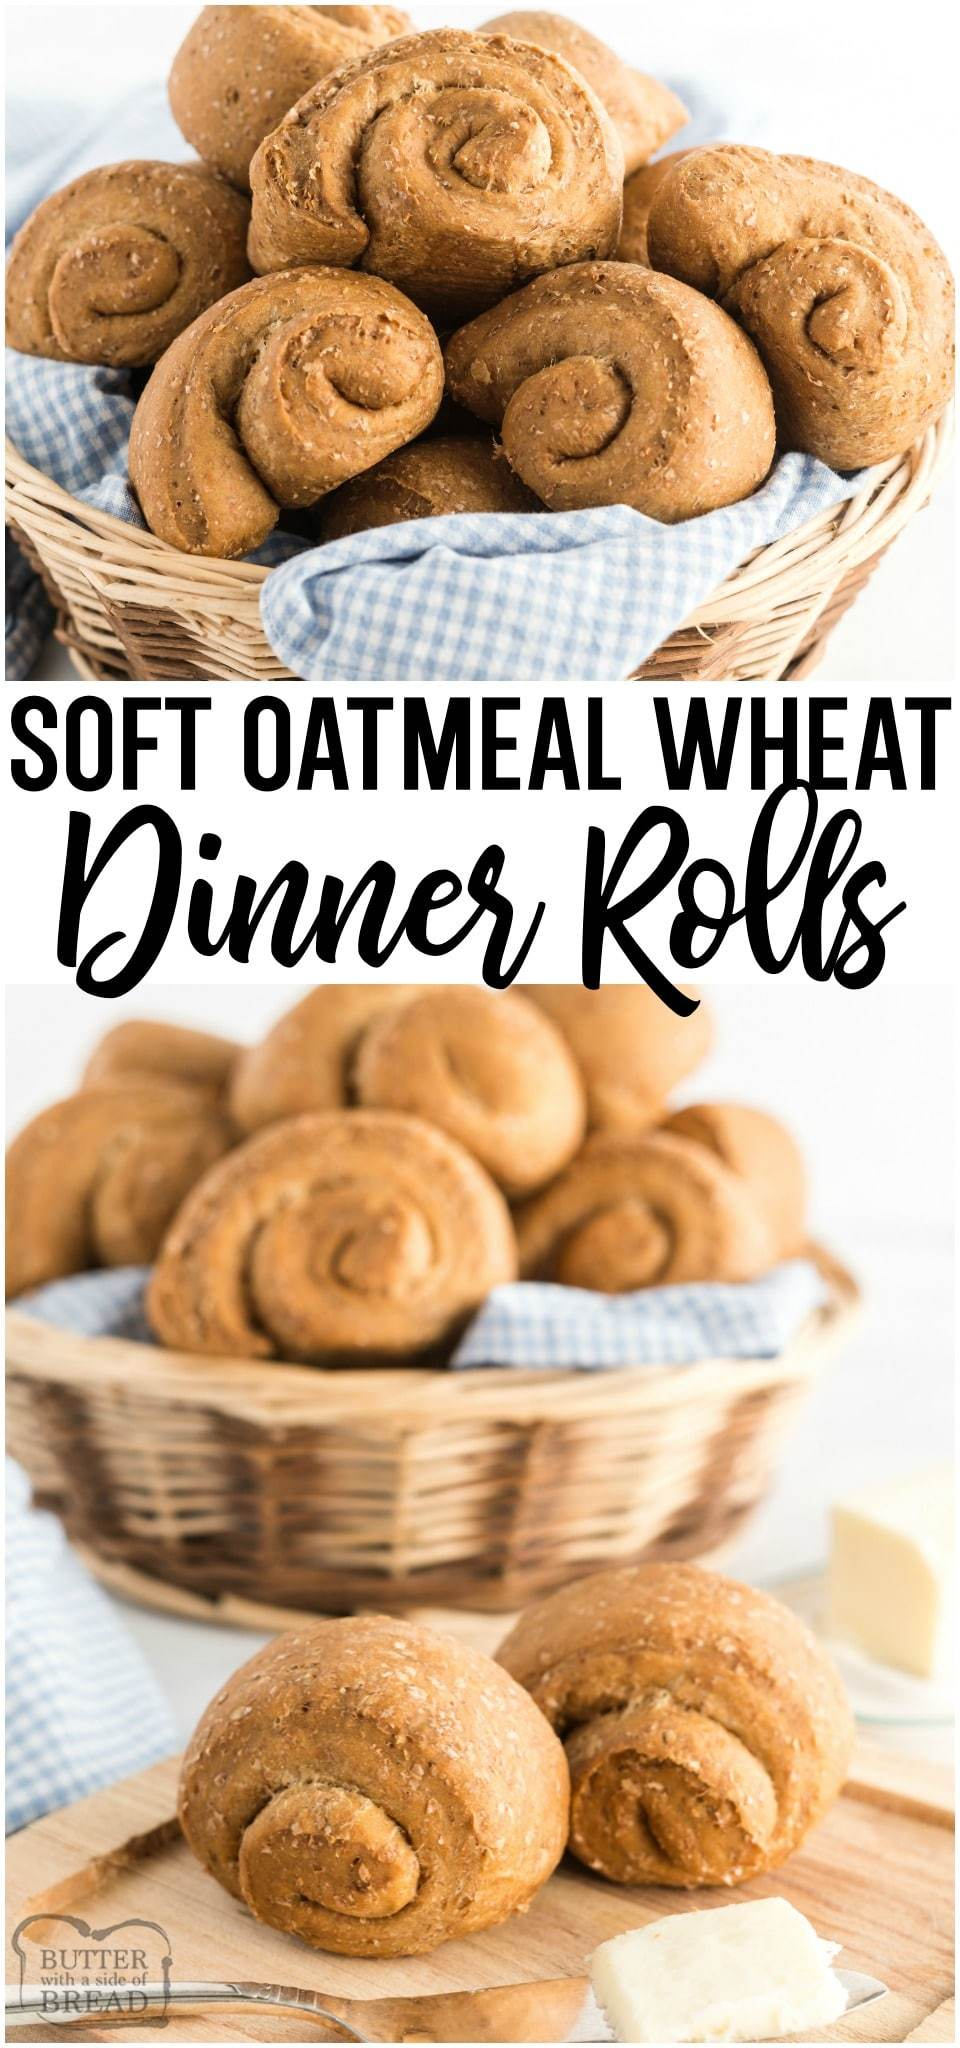 Soft Wheat Dinner Rolls made with whole wheat flour, yeast, oats and molasses for a homemade roll with fantastic taste and texture! Family favorite #wheat #dinner #roll #recipe! #baking #bread #homemade #dinnerroll #breadrecipe from BUTTER WITH A SIDE OF BREAD